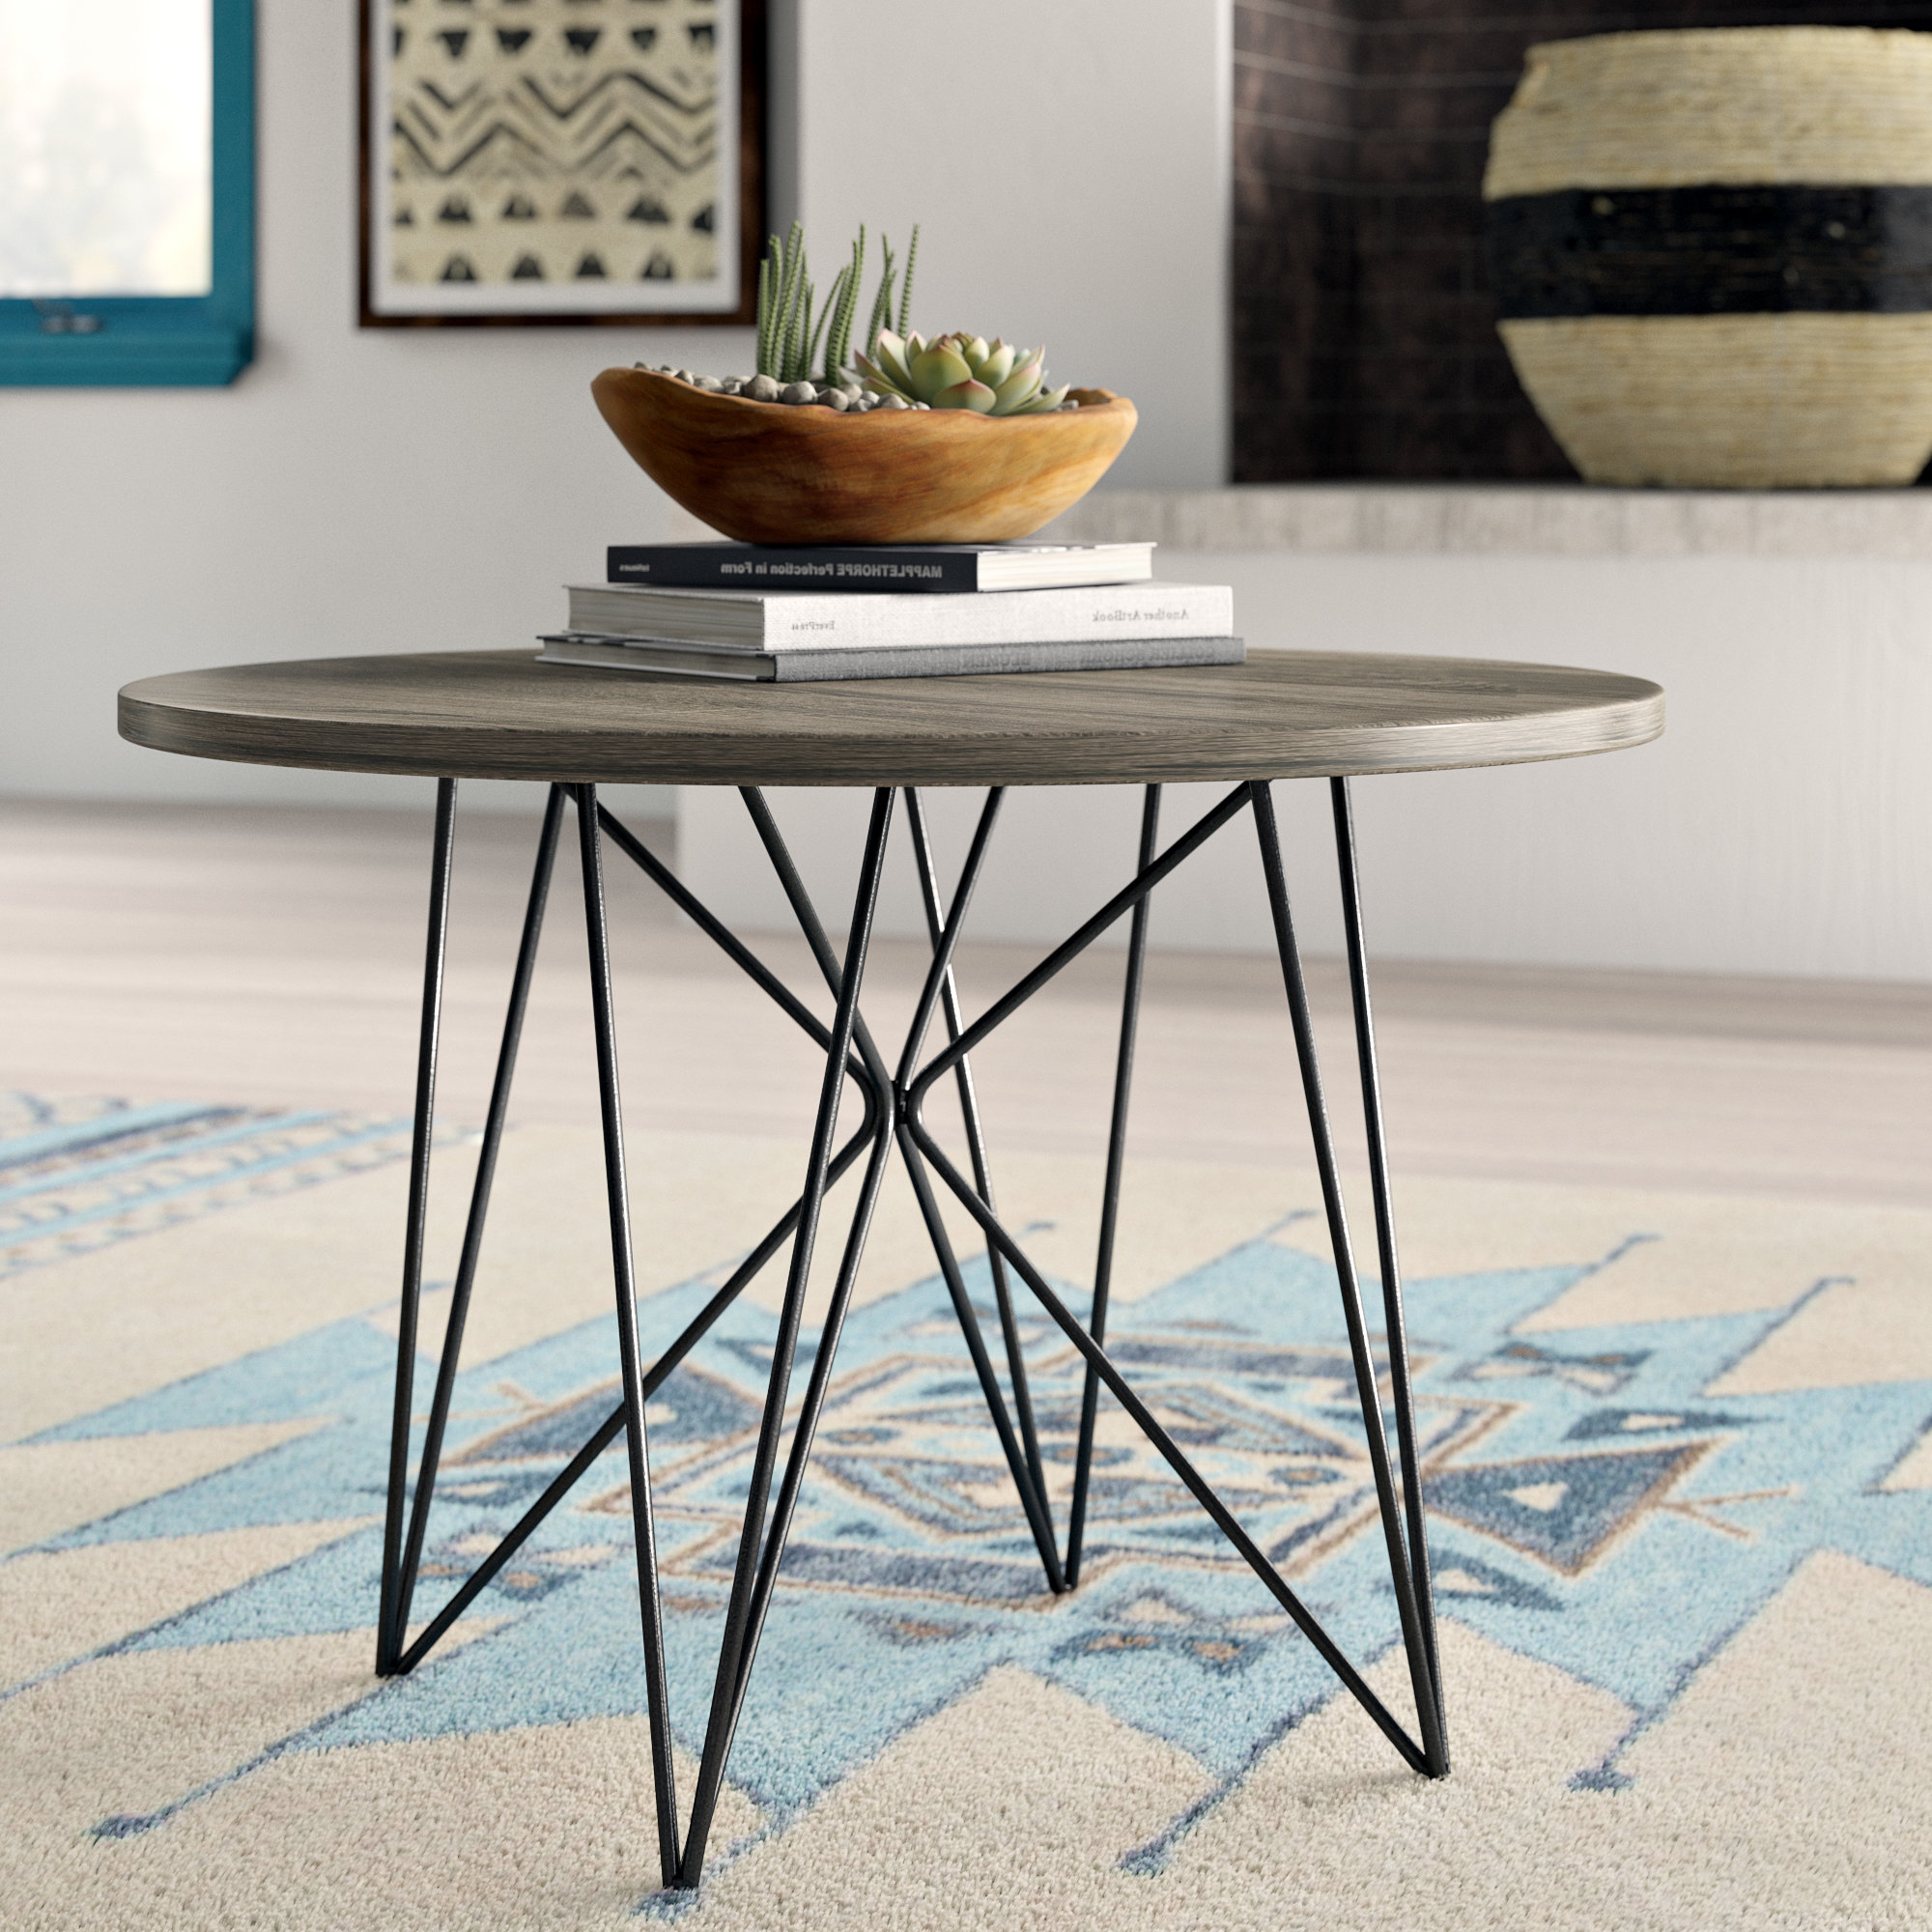 Wayfair With Regard To Most Recent Large Scale Chinese Farmhouse Coffee Tables (View 13 of 20)